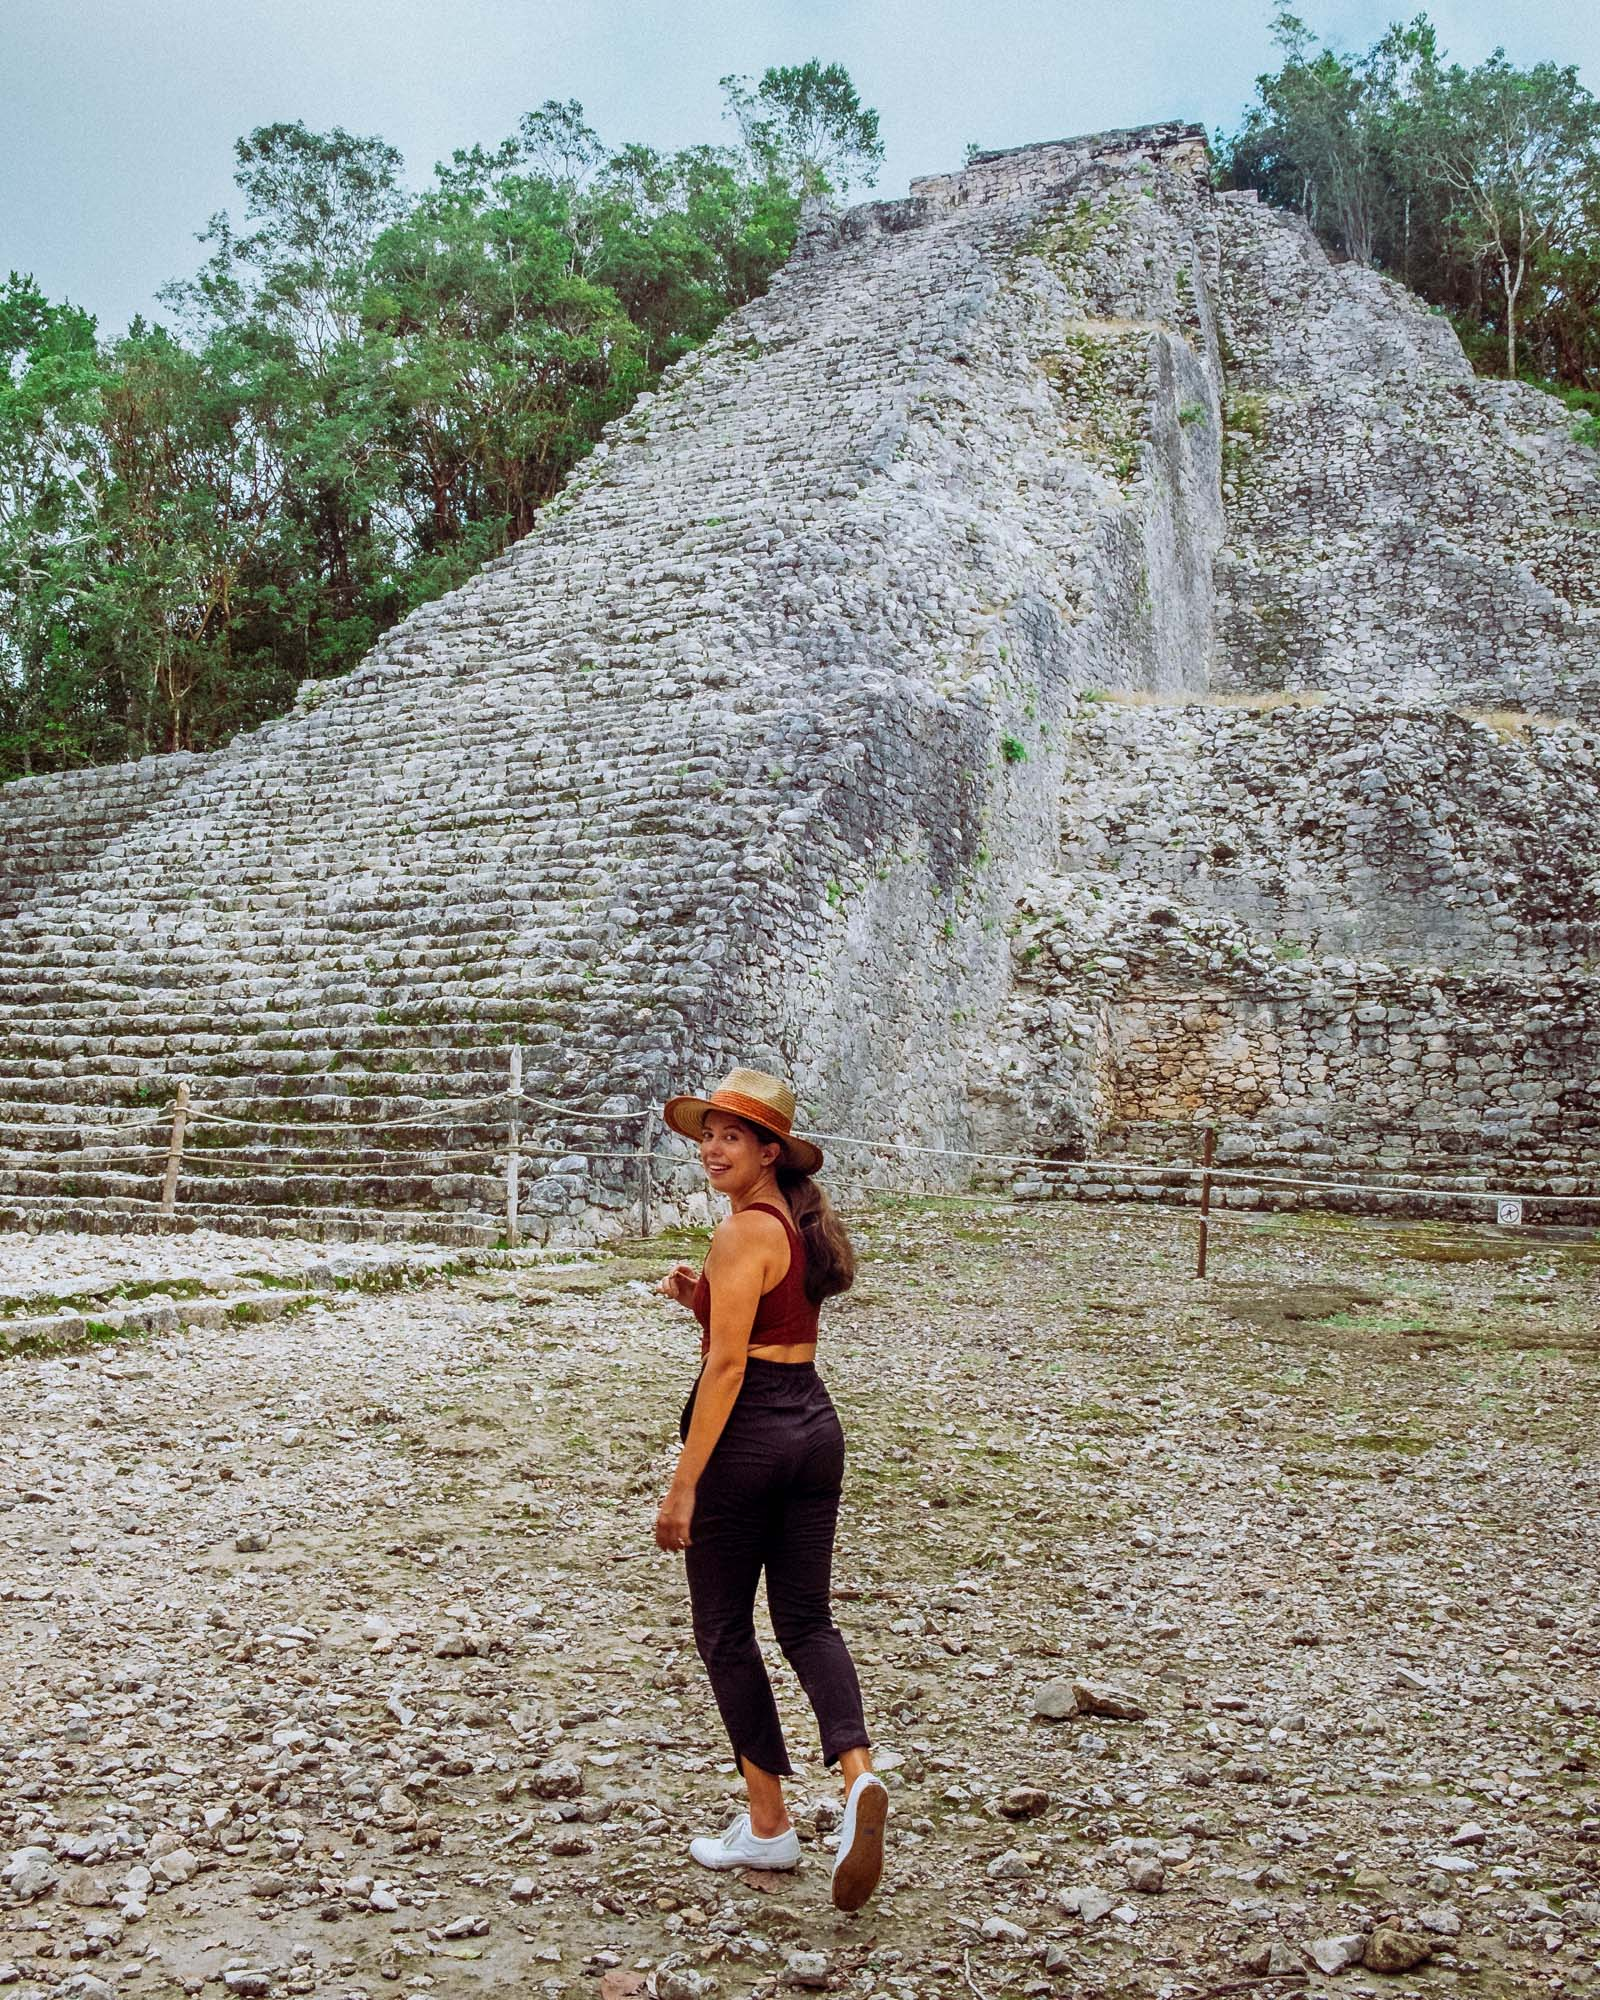 Rachel Off Duty: Woman Posing in front of Coba Ruins, Mexico